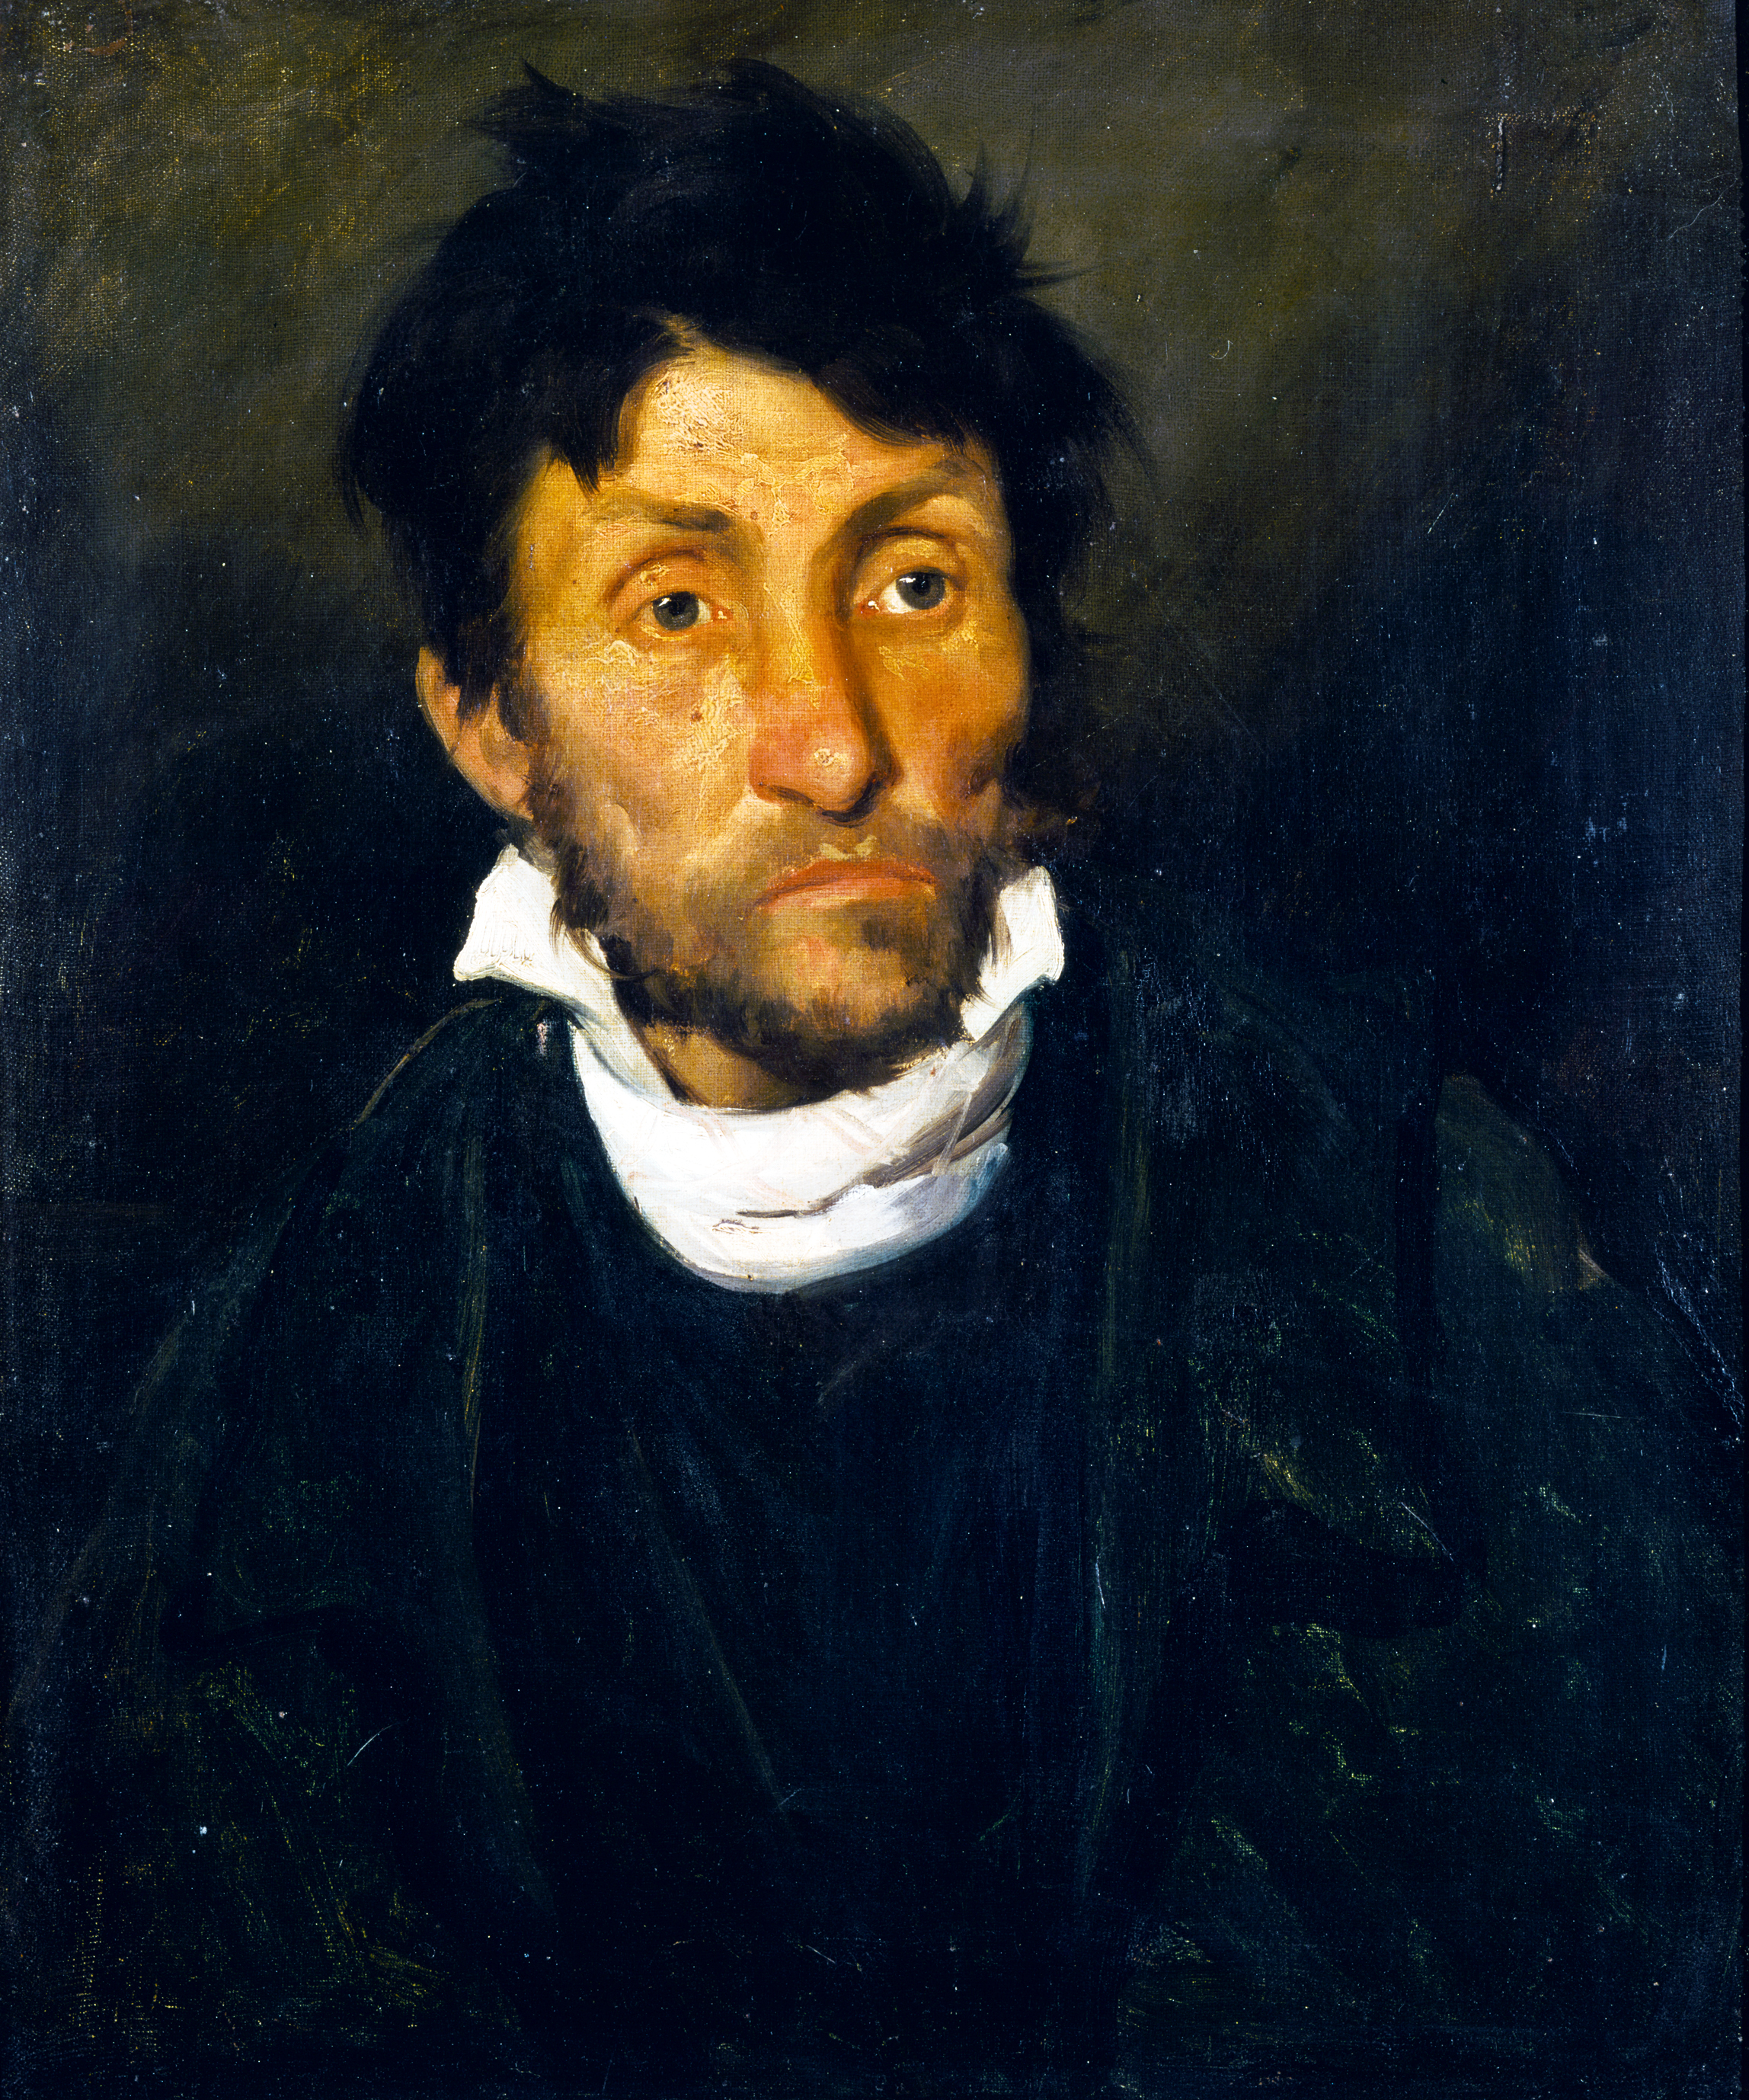 Portrait of a Kleptomaniac, c. 1820, Museum of Fine Arts, Ghent, Belgium